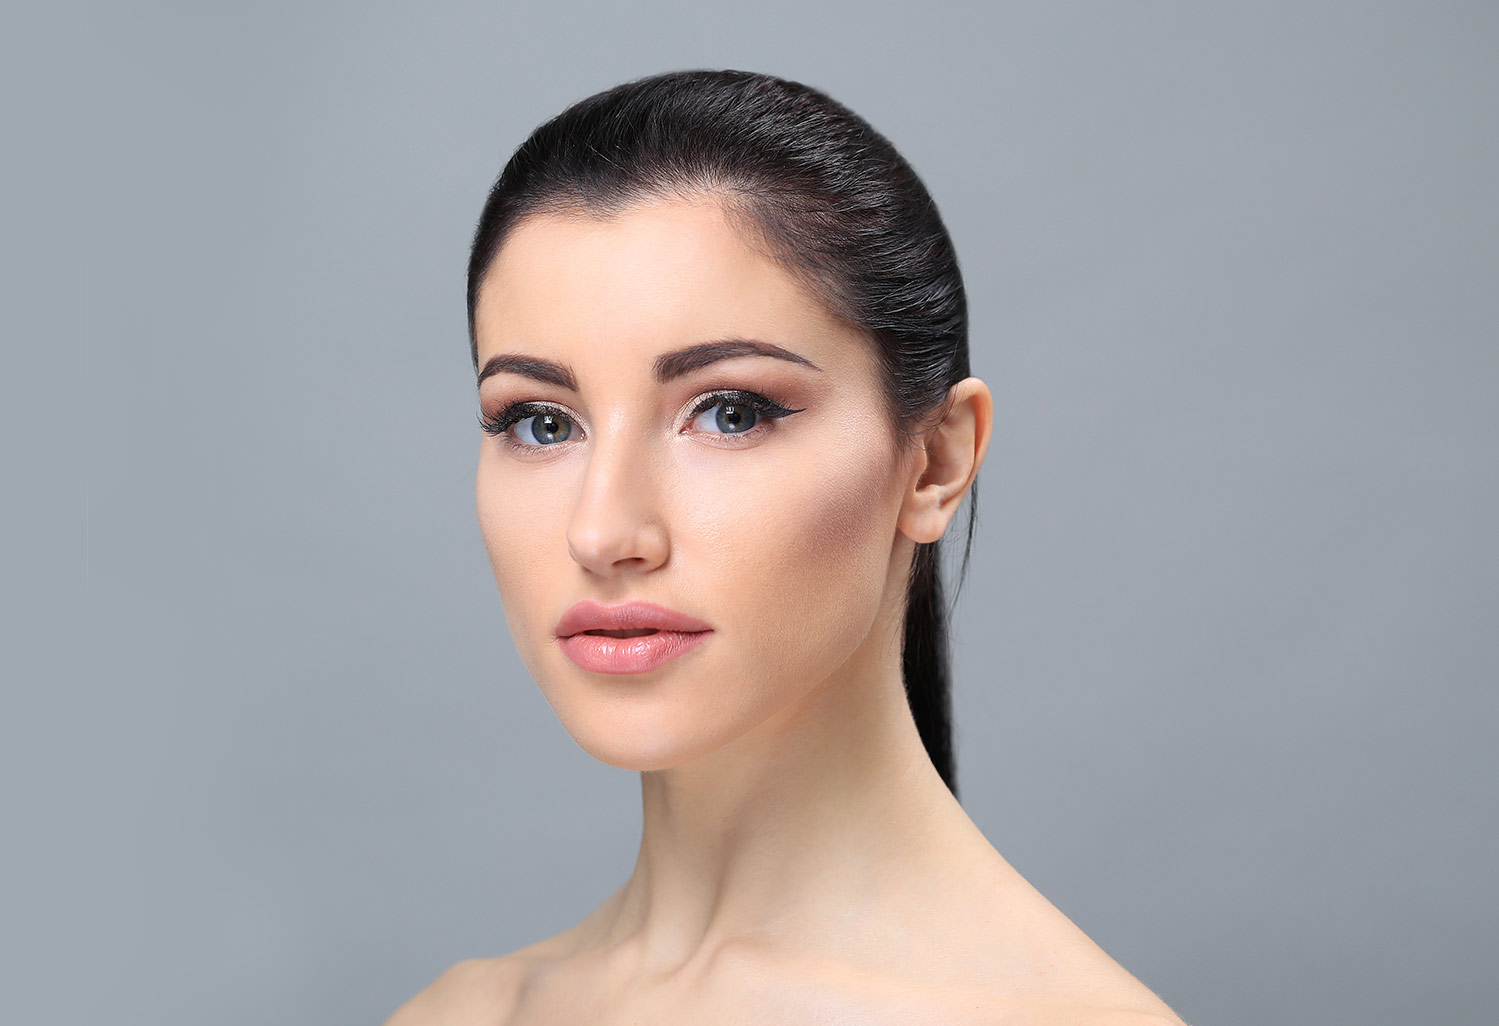 Facelift-Surgery-and-Dimple-Creation